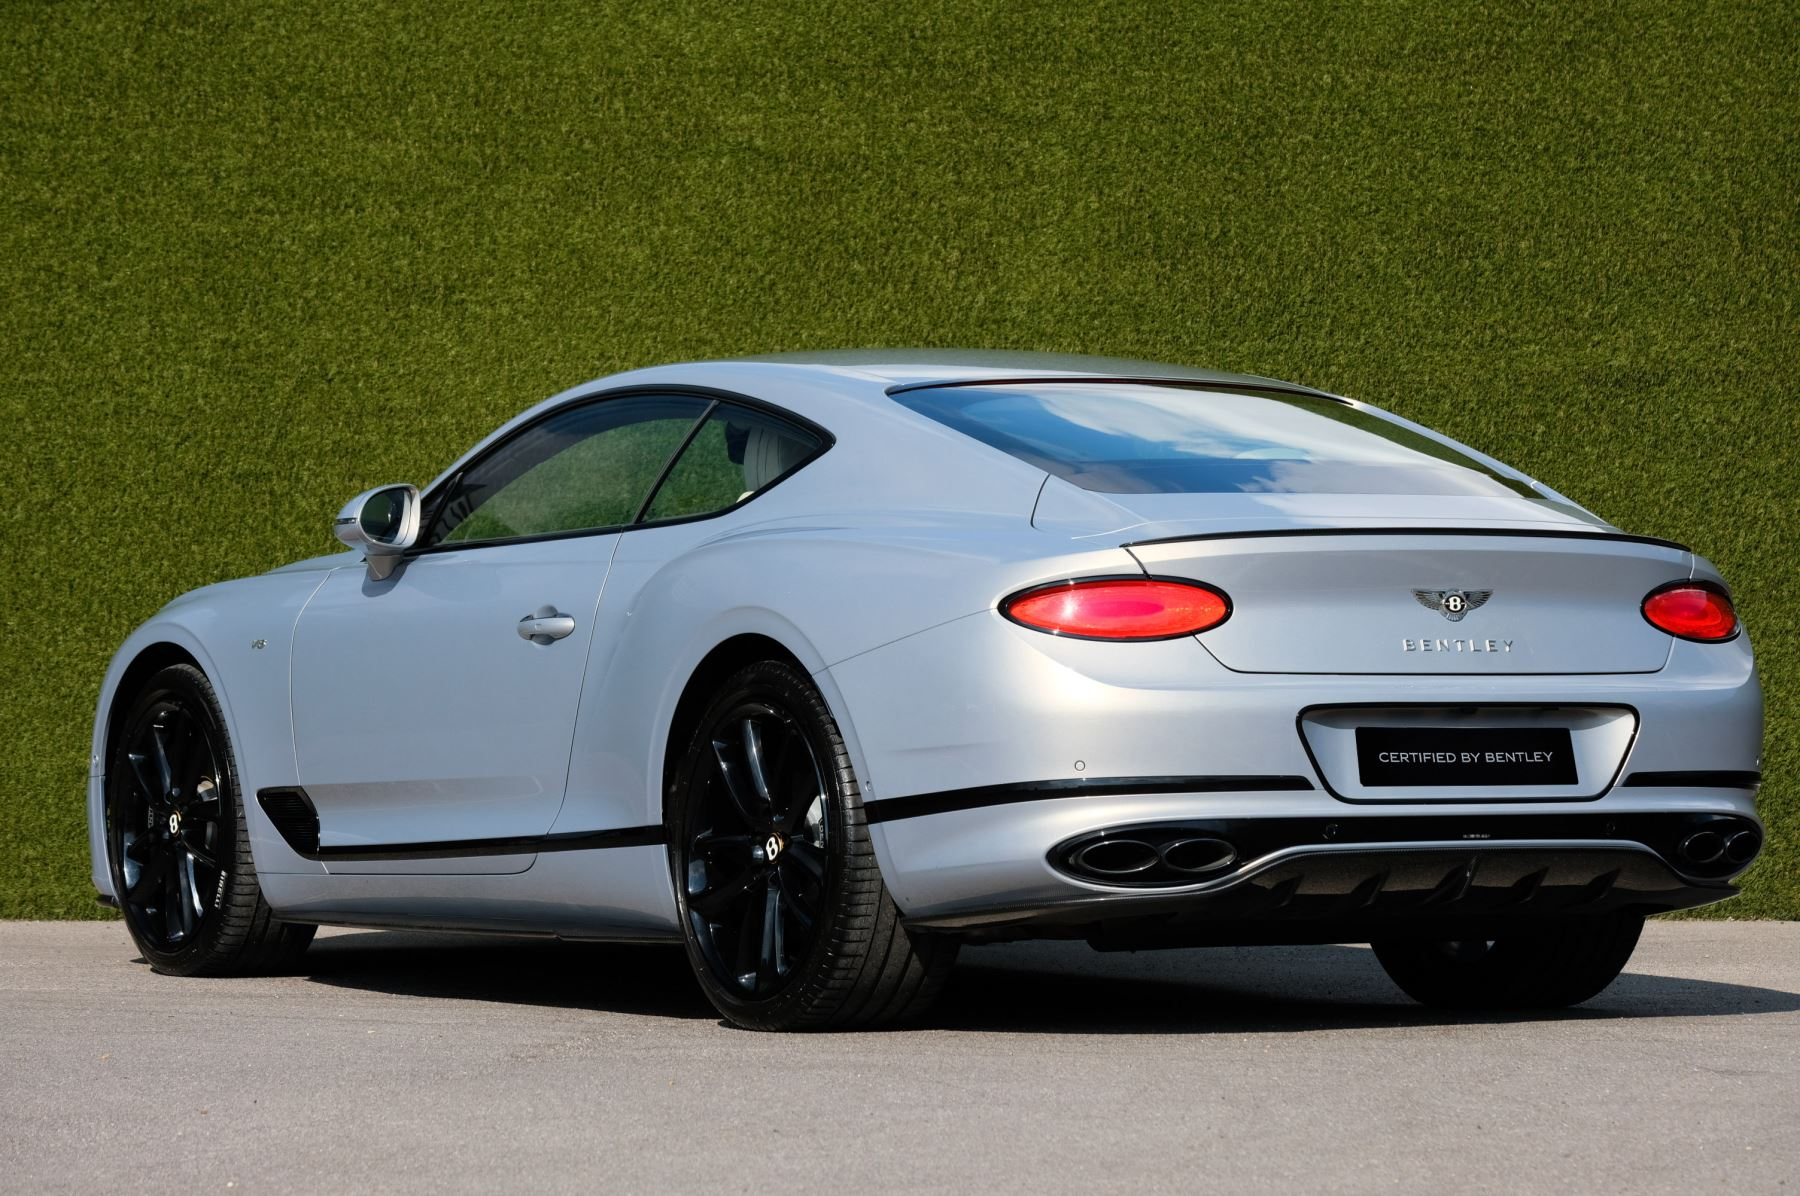 Bentley Continental GT 4.0 V8 - Mulliner Driving Specification with Black Painted Wheels - Touring and Centenary Spec image 5